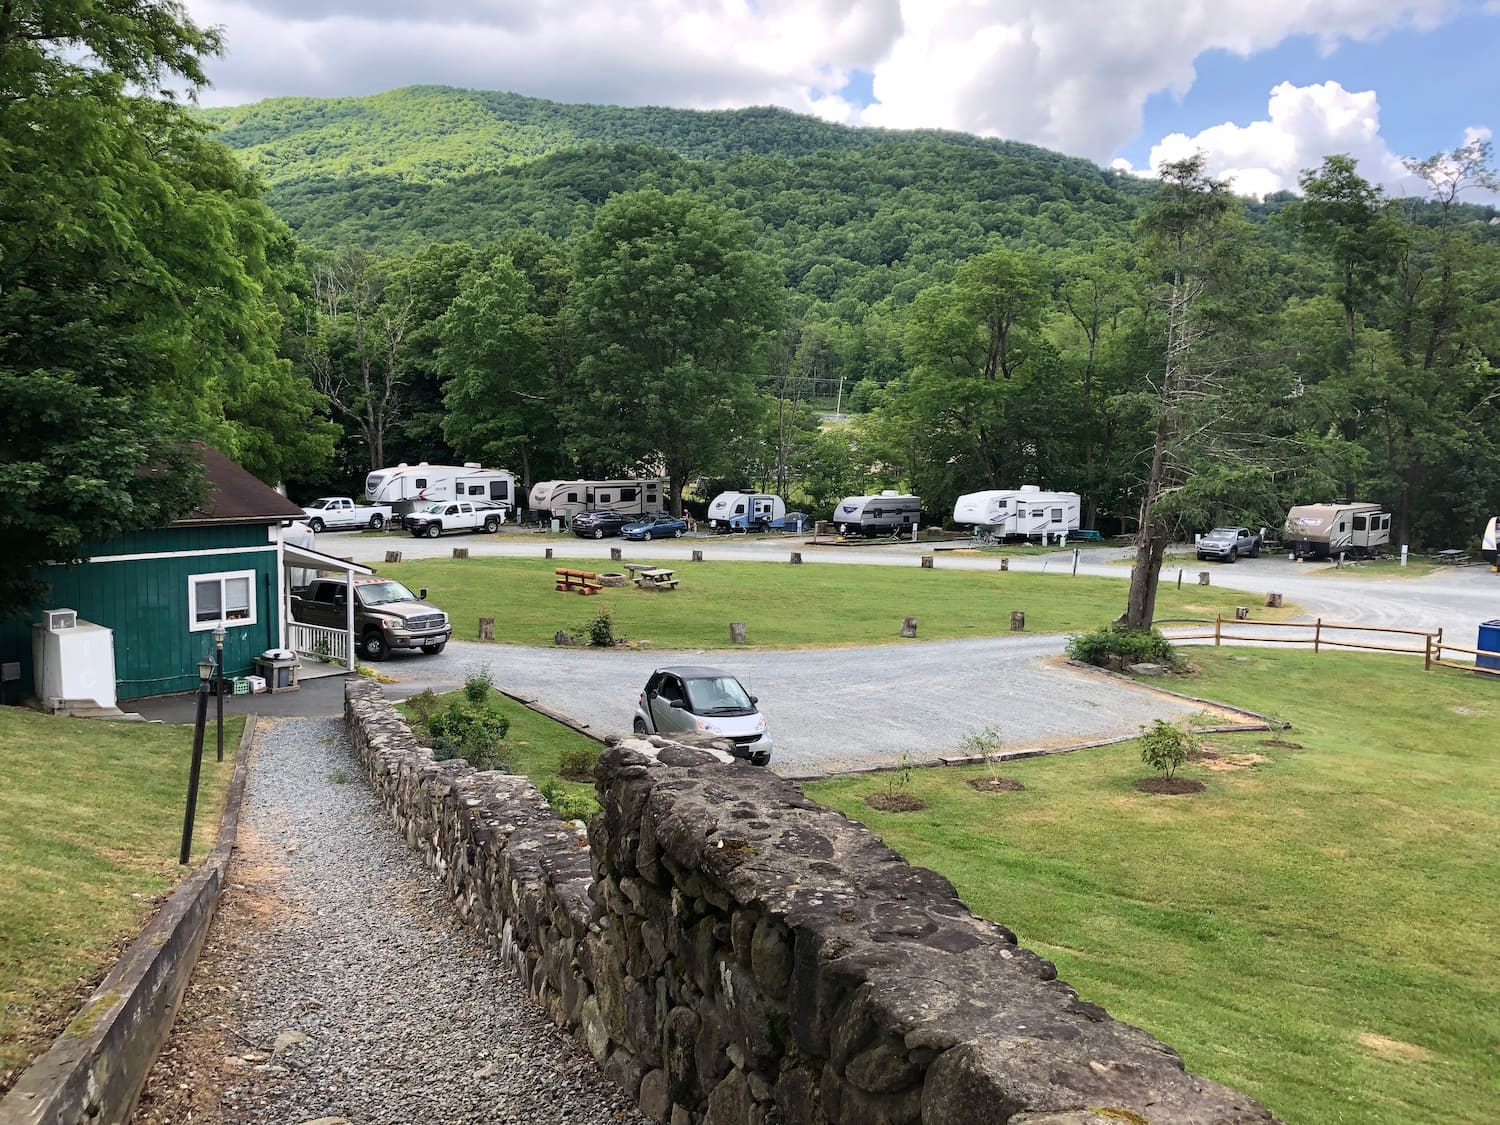 RVs lined up at campground